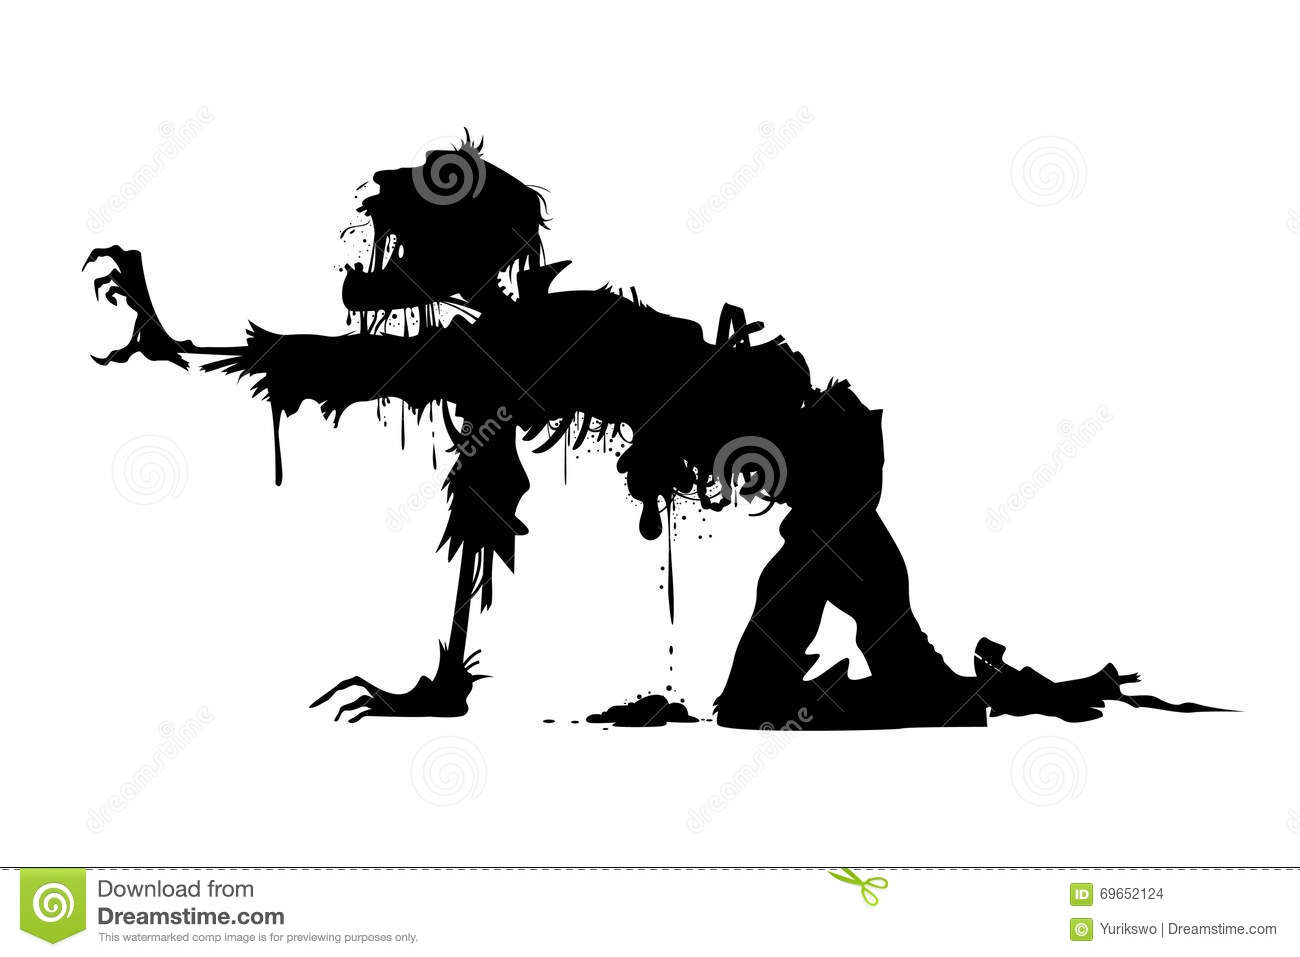 Crawling Rotten Zombie Silhouette Stock Vector - Image: 69652124